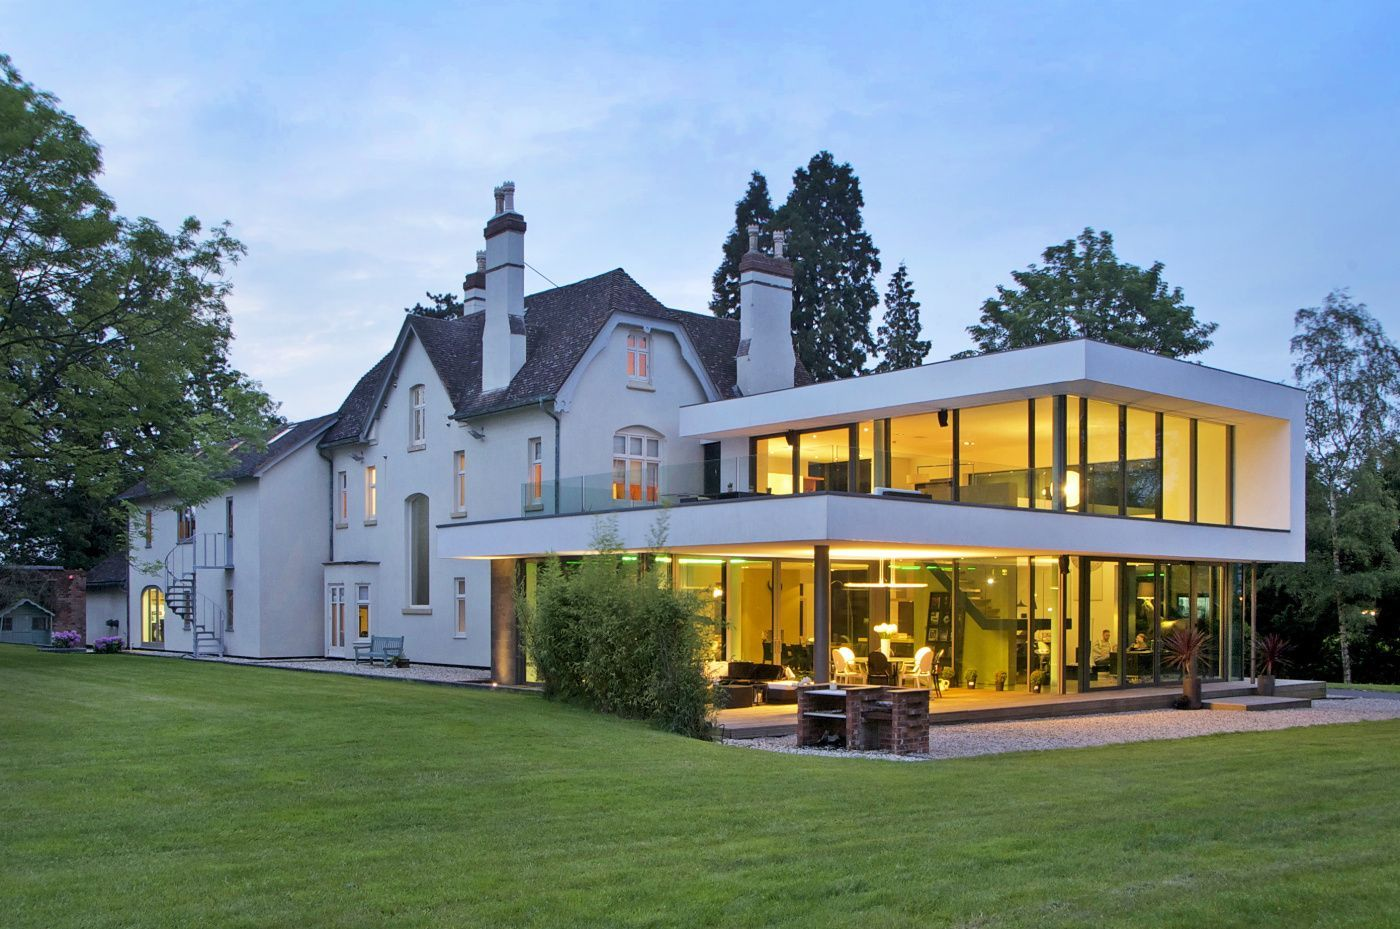 Property quiz: Can you guess the value of these homes?